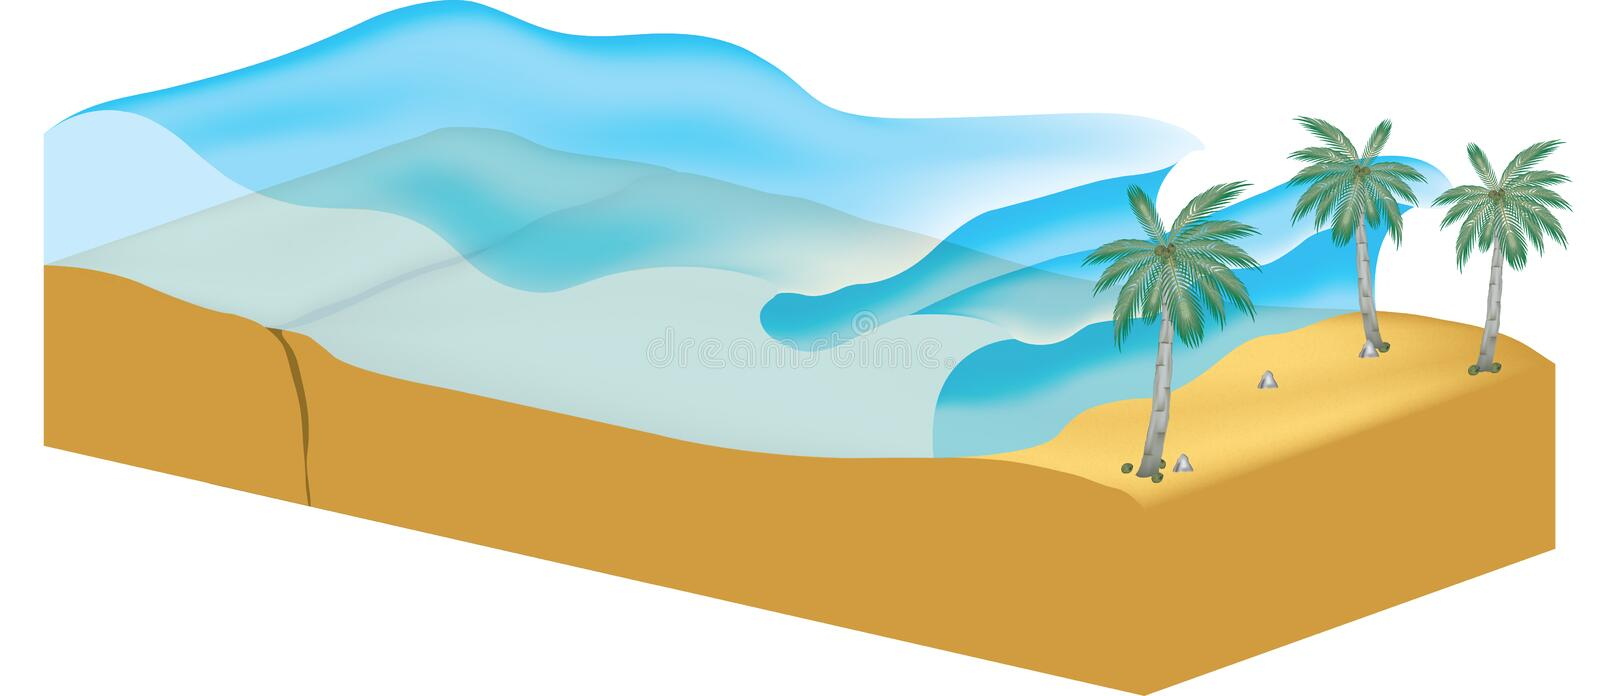 Tsunami. Illustration with waves coming to shore from ocean vector illustration